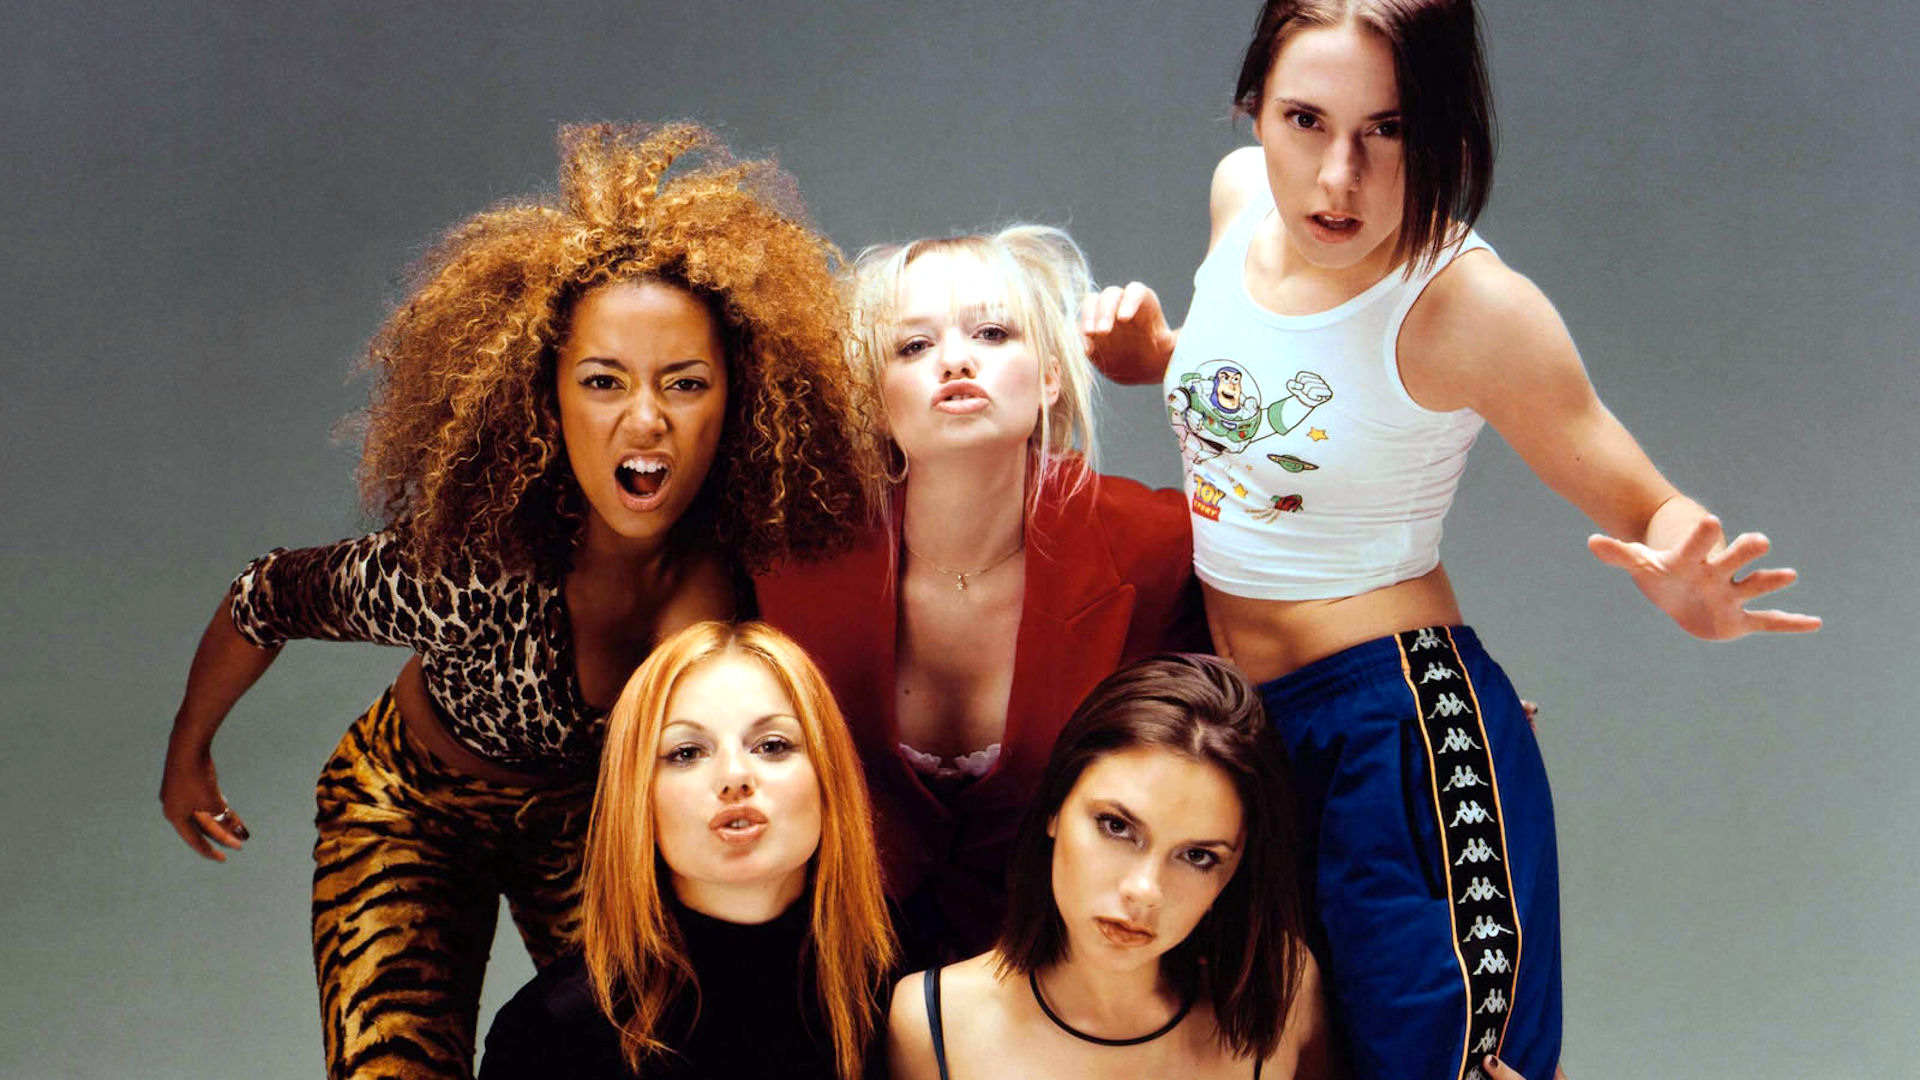 spice girls wallpapers high quality | download free